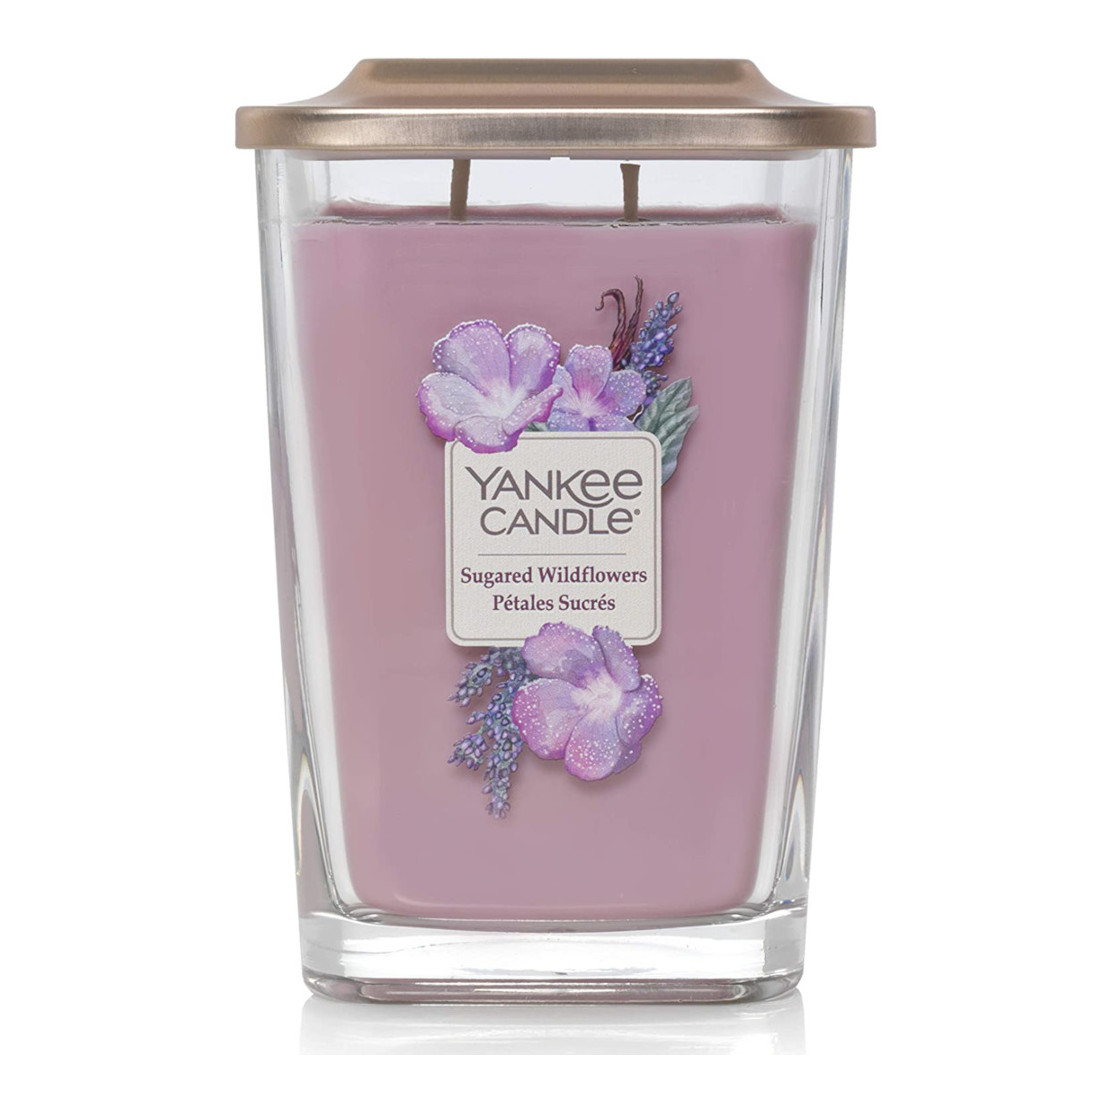 Yankee Candle Elevation Sugared Wildflowers Large Jar